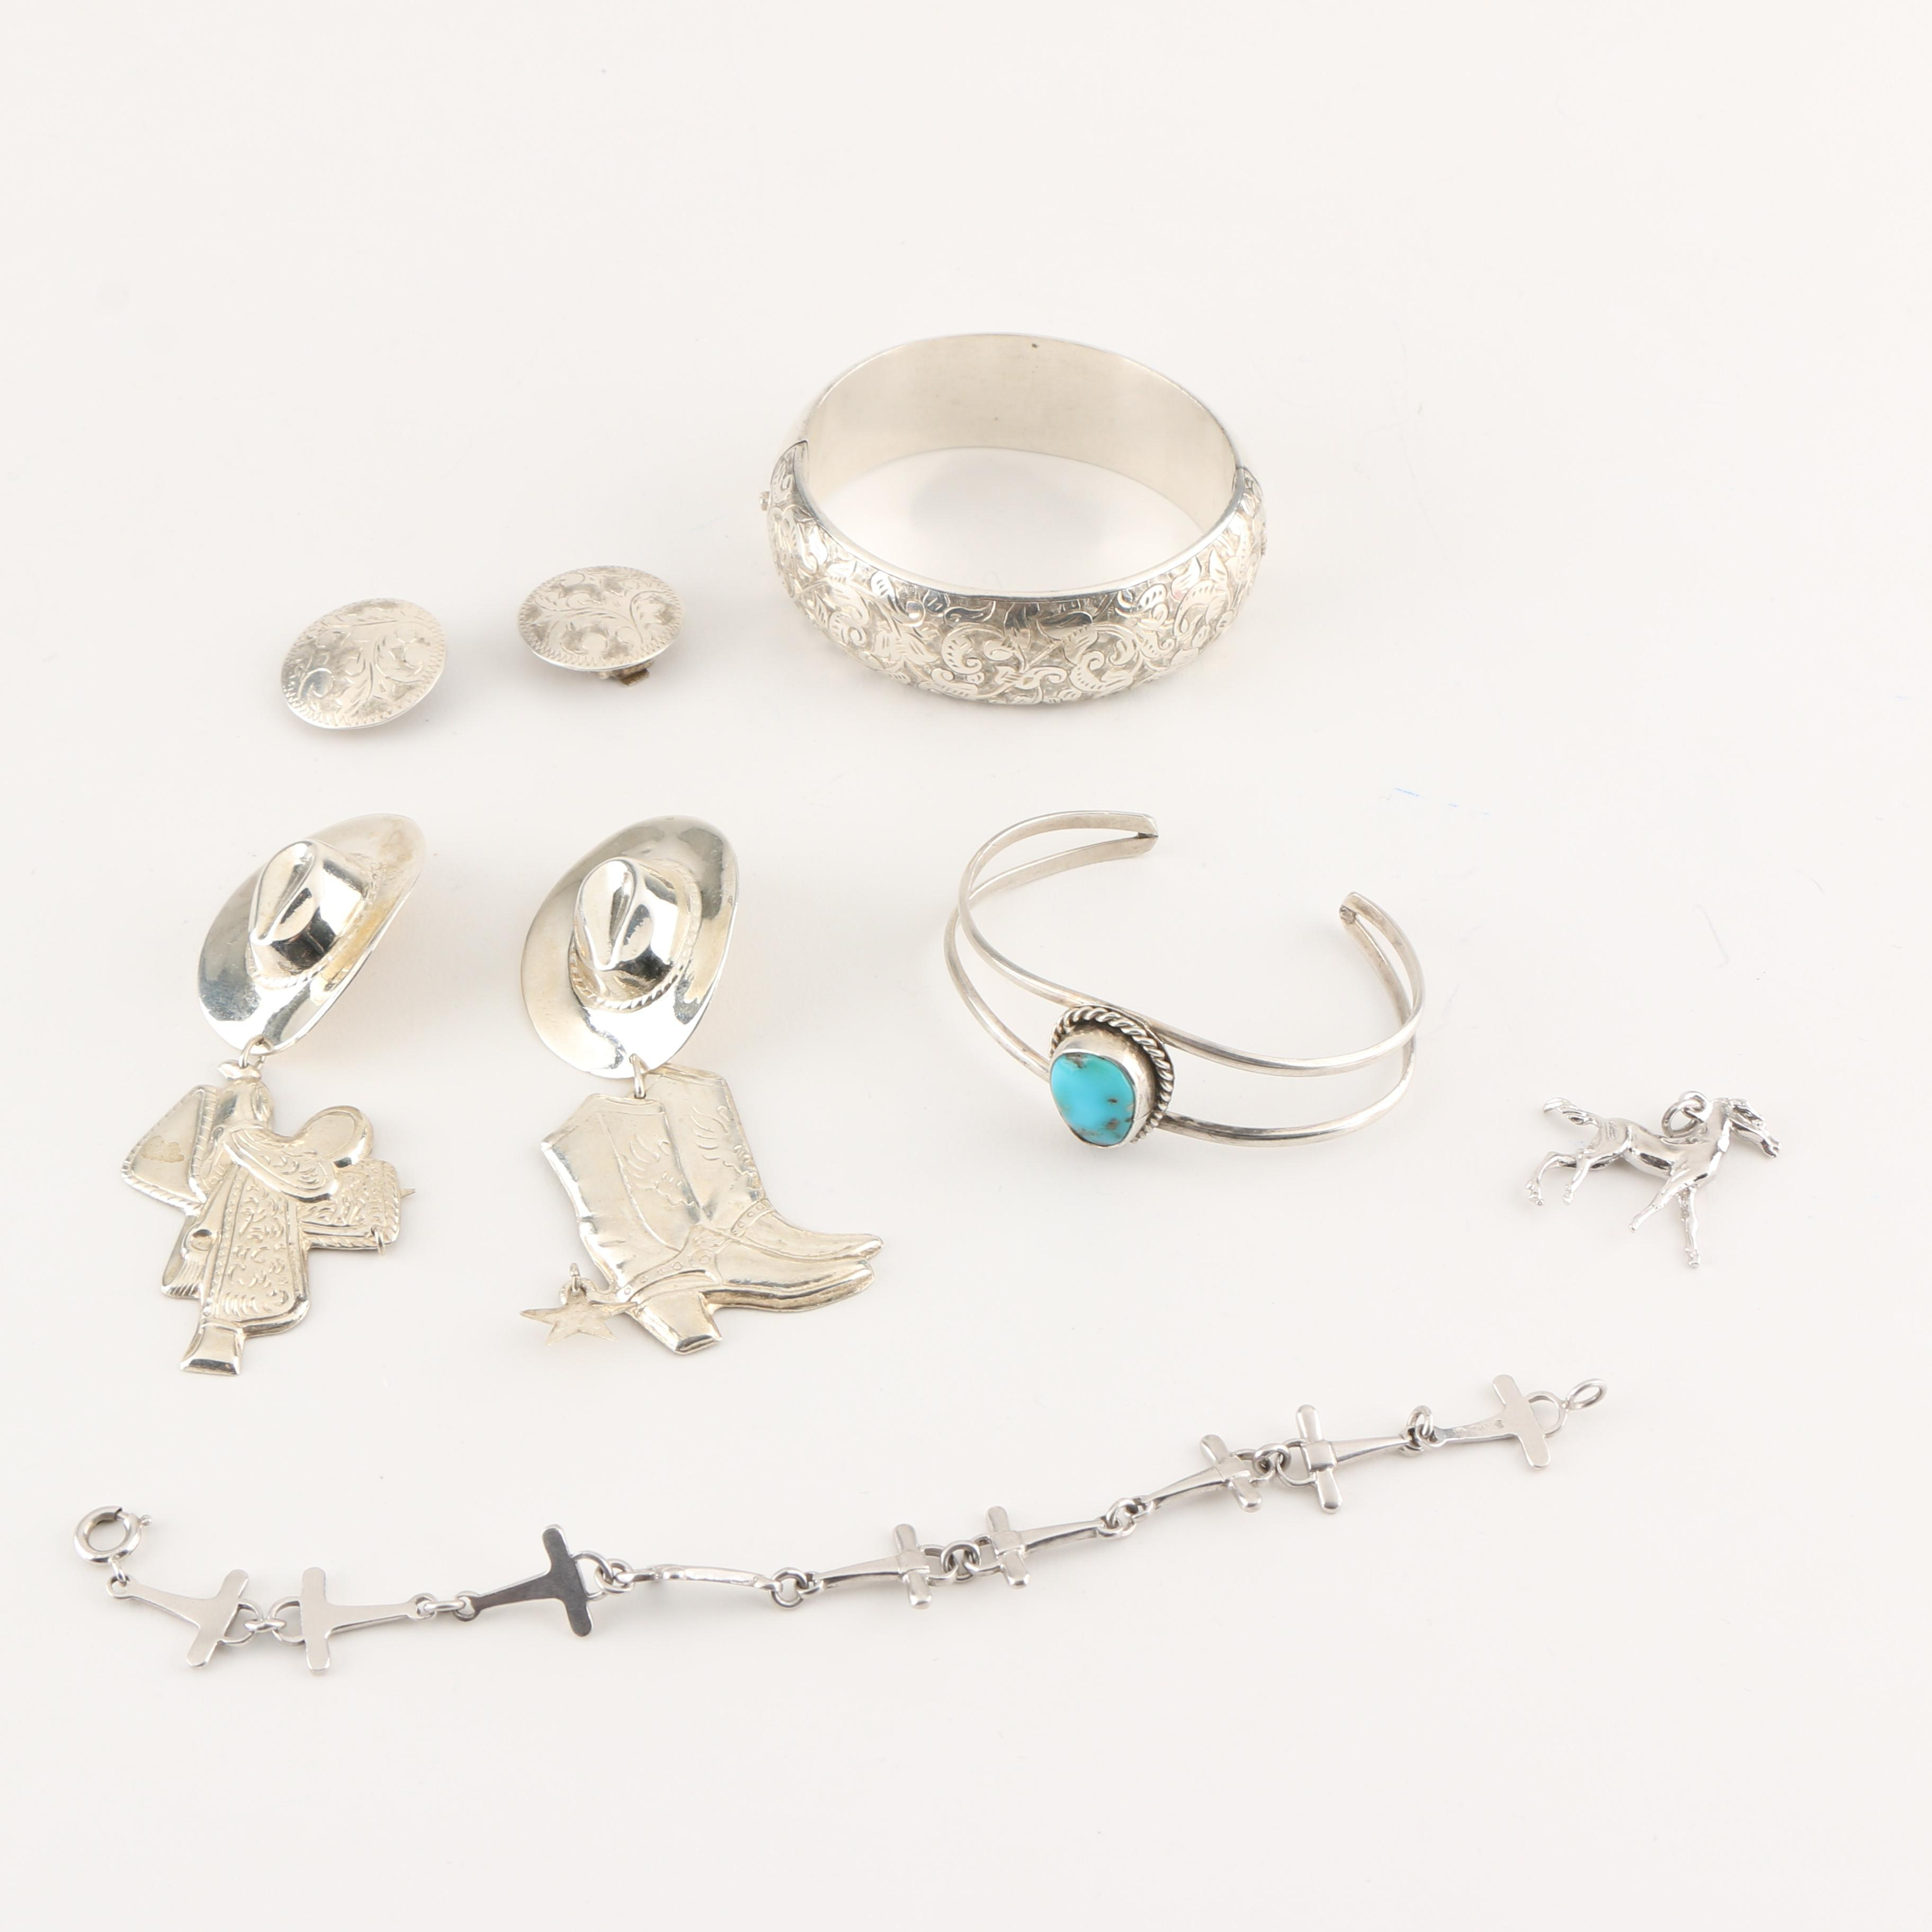 Western Themed Sterling Silver Jewelry Including Turquoise